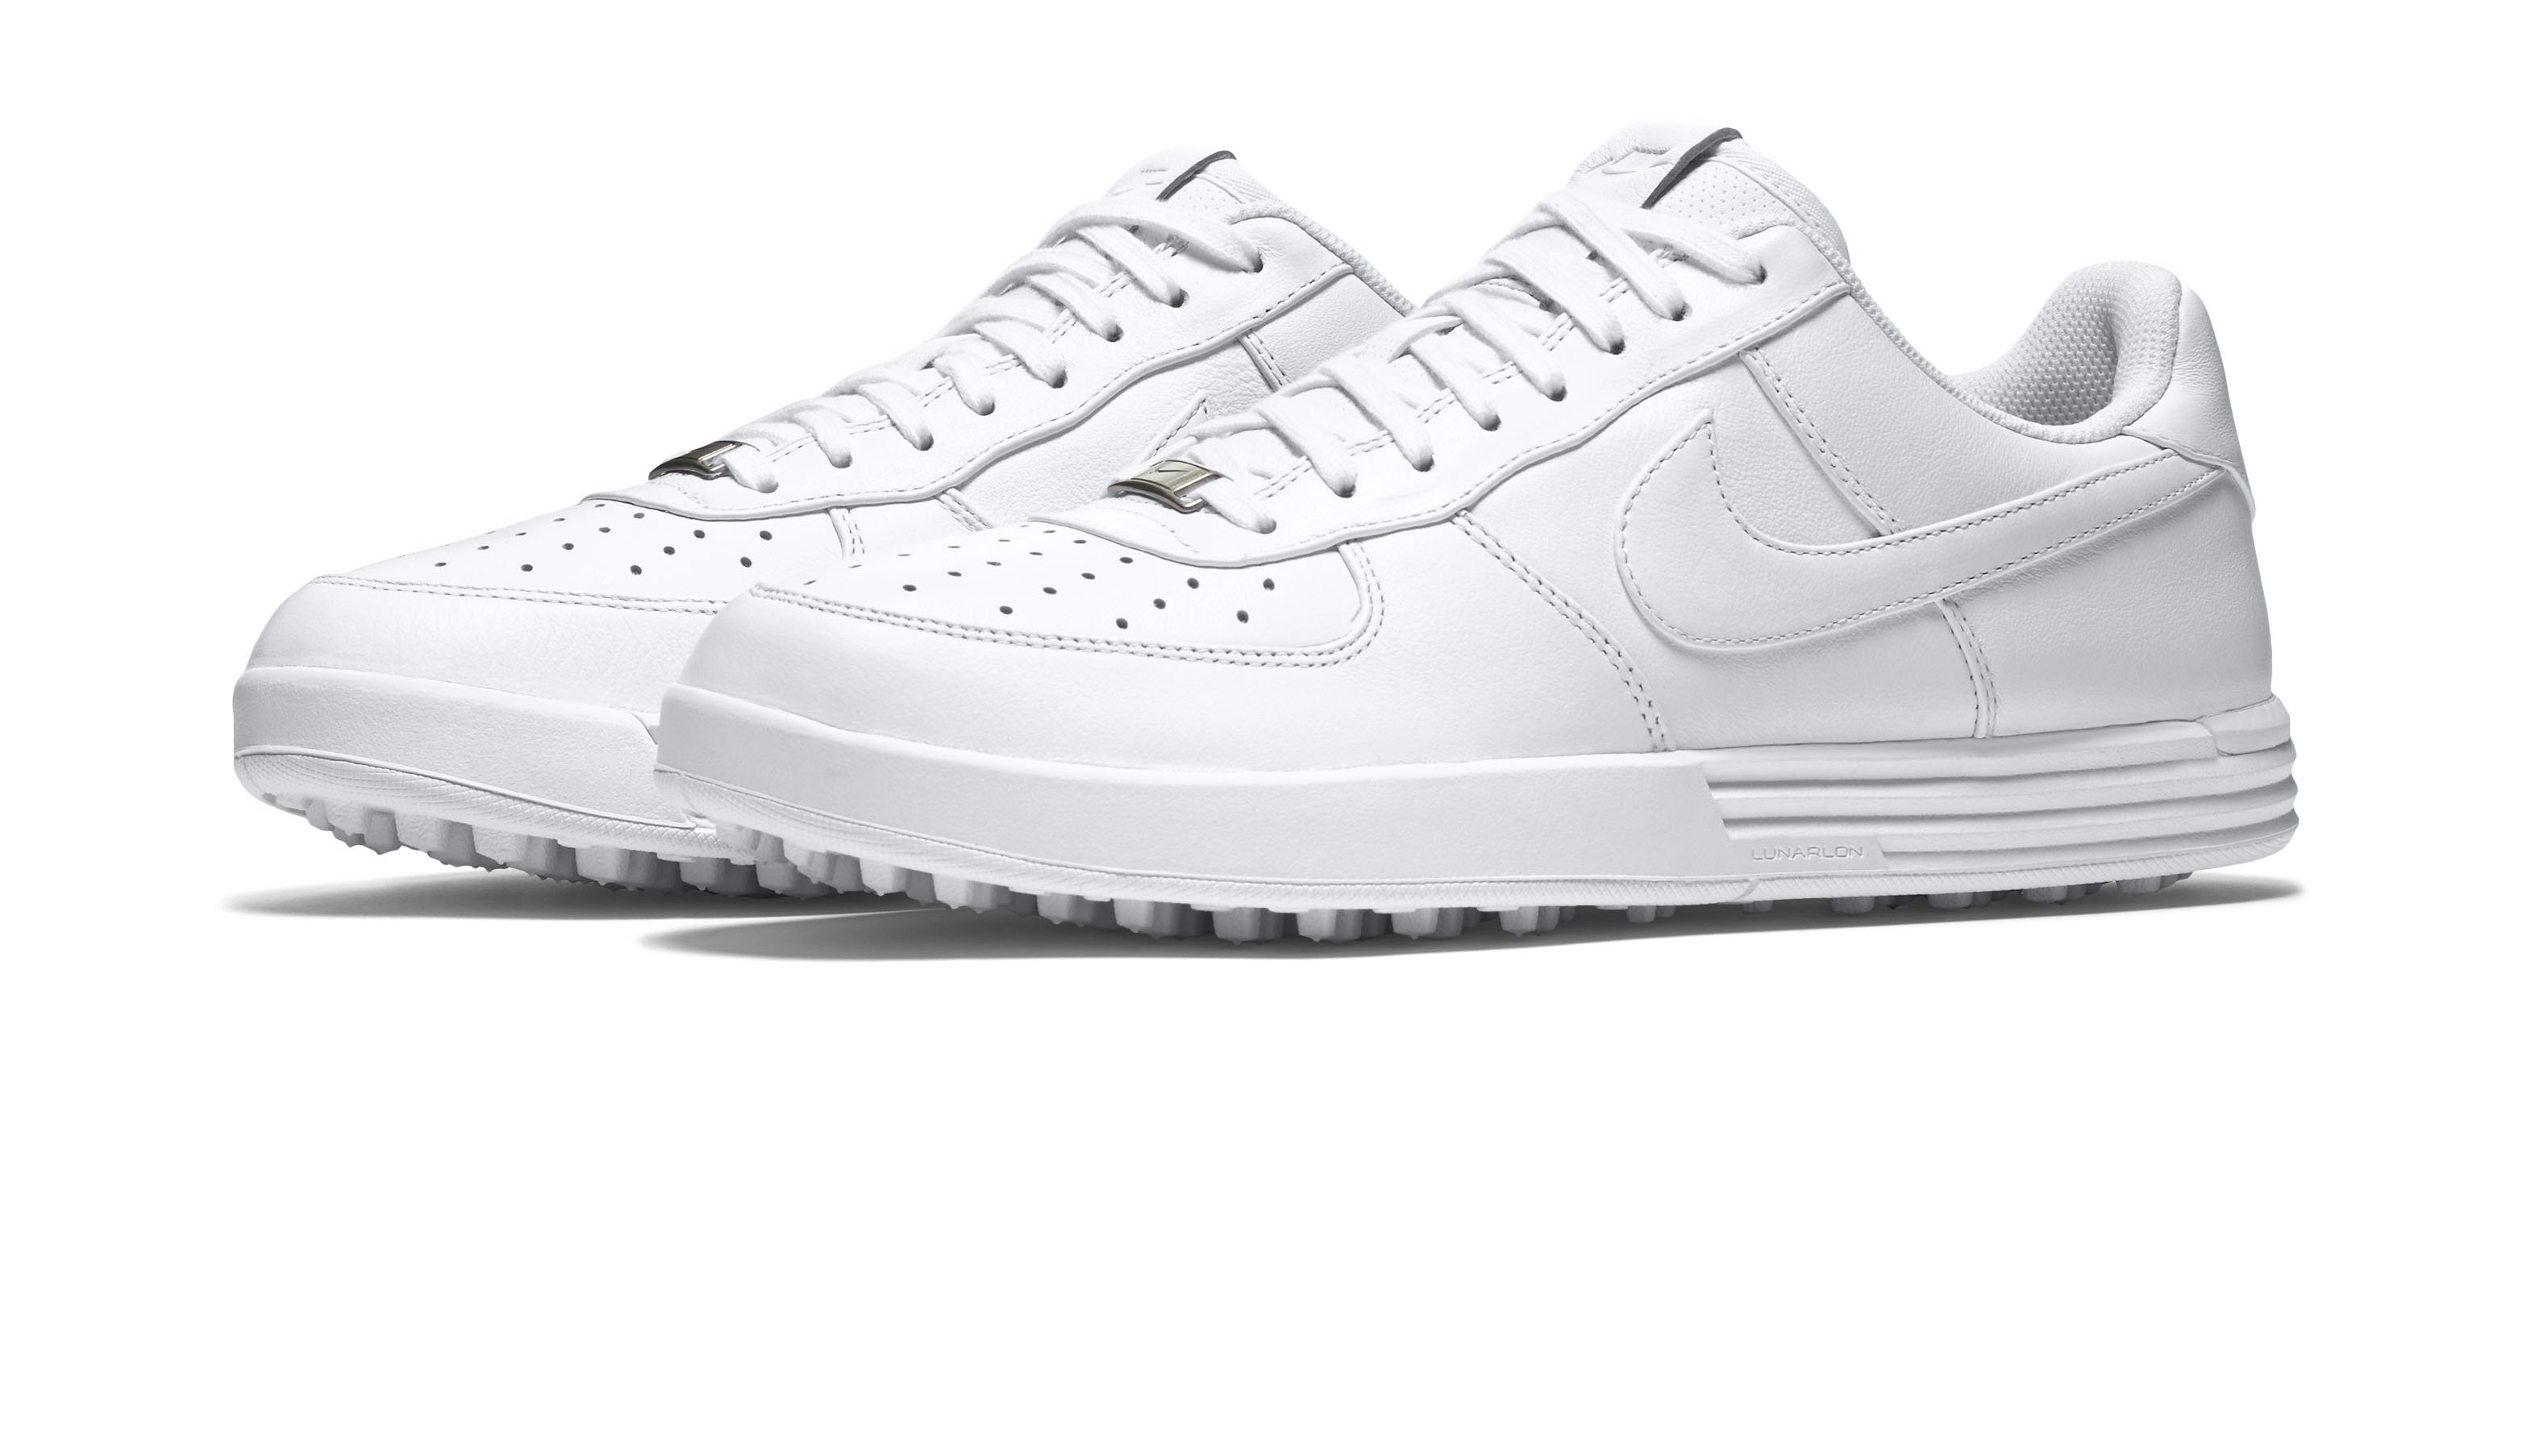 Nike launch the Enemies Of The Course Range